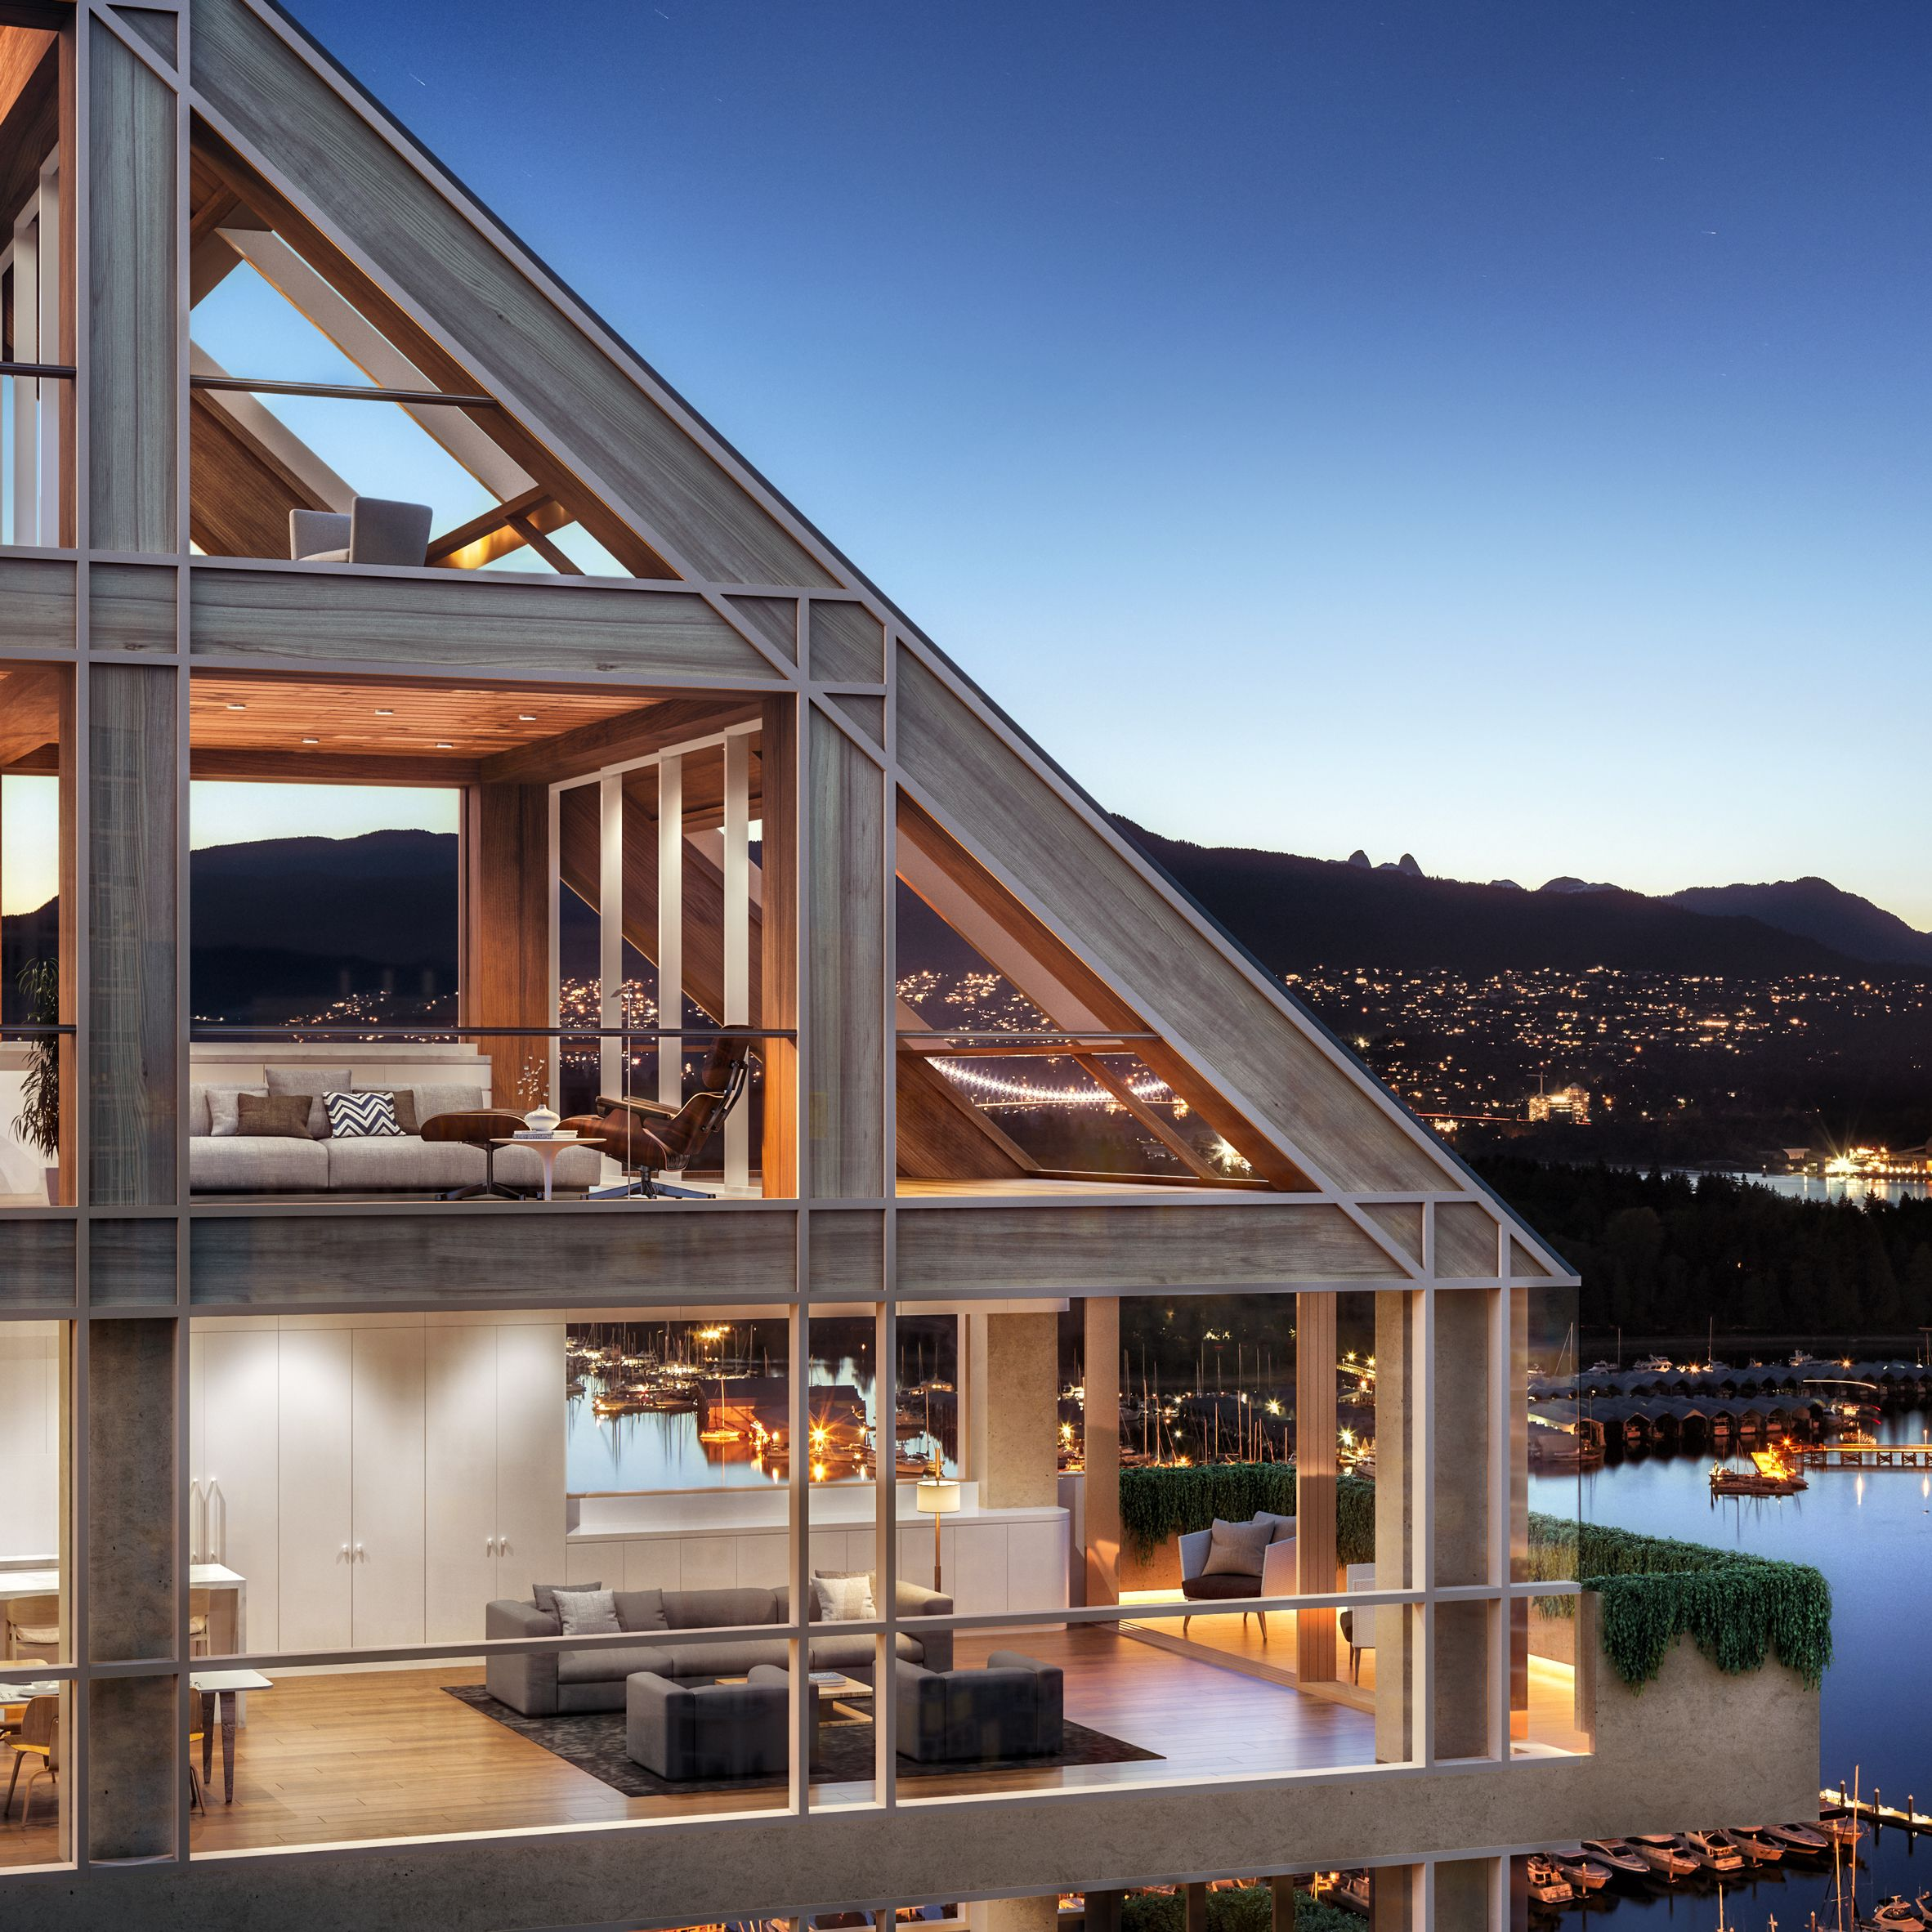 Attractive These New Images Offer A Glimpse Inside Japanese Architect Shigeru Banu0027s  Terrace House In Vancouver,